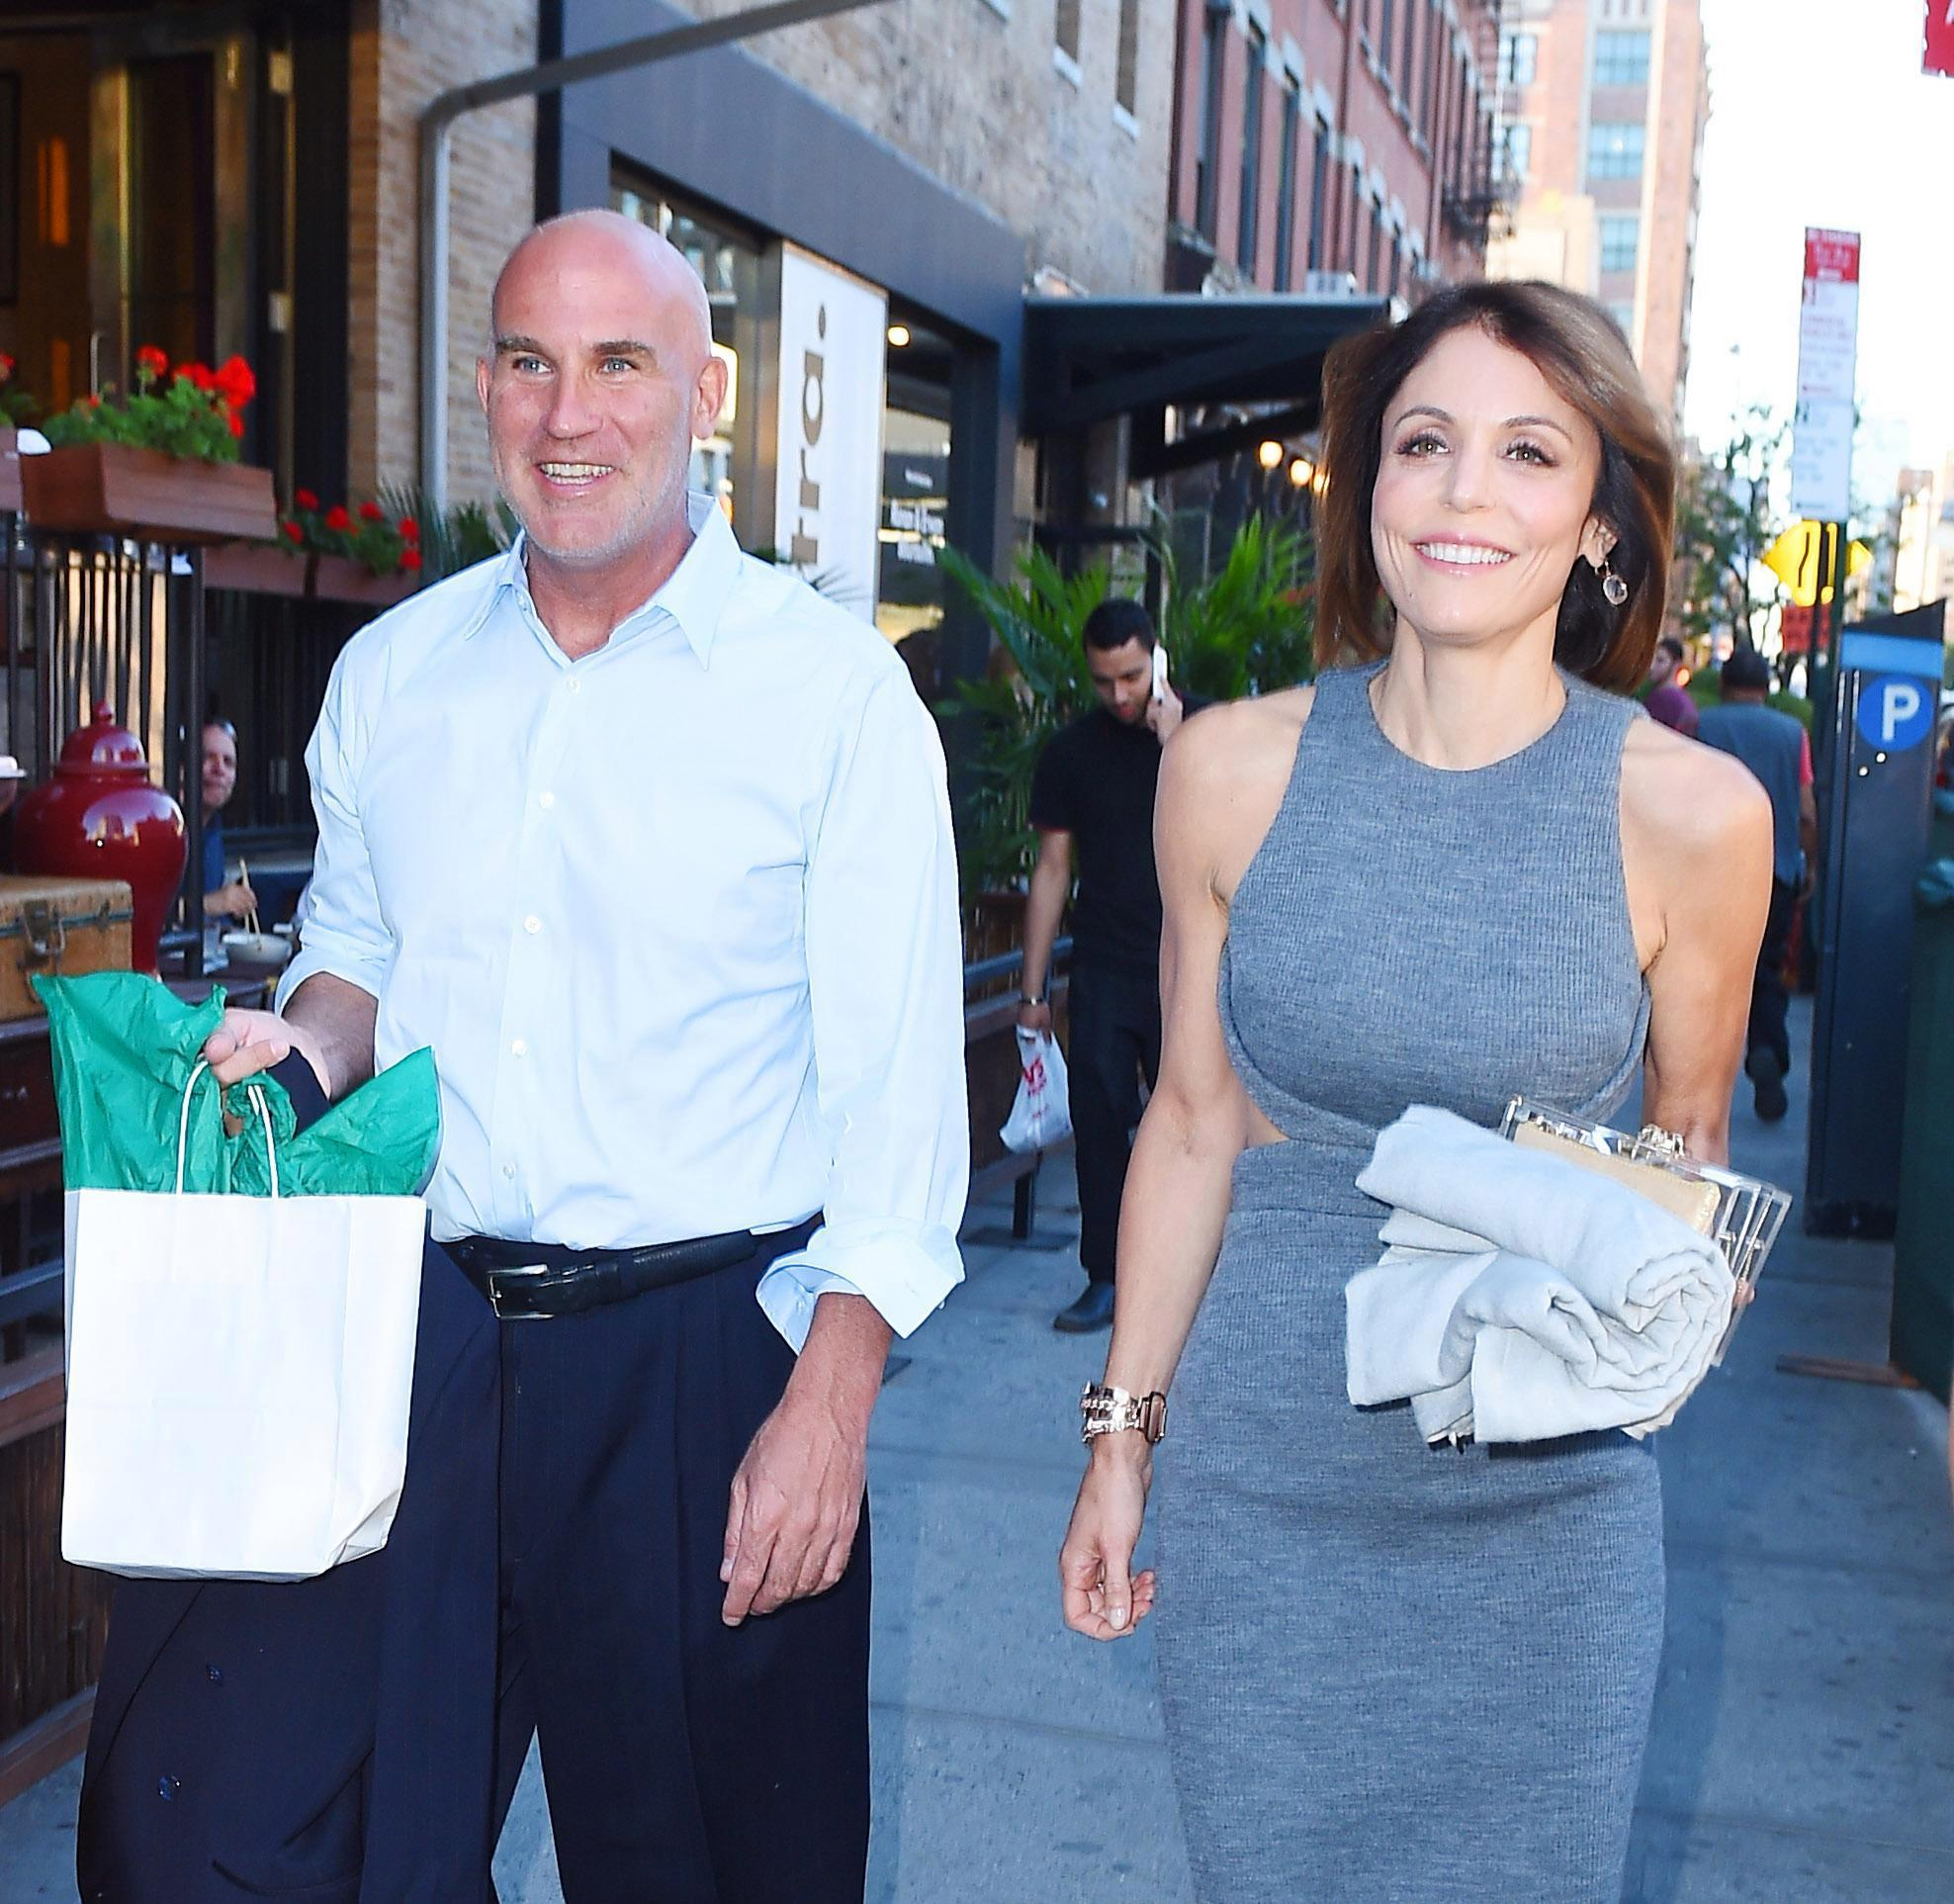 Dennis Shields dead – Bethenny Frankel's boyfriend found dead in Trump Tower